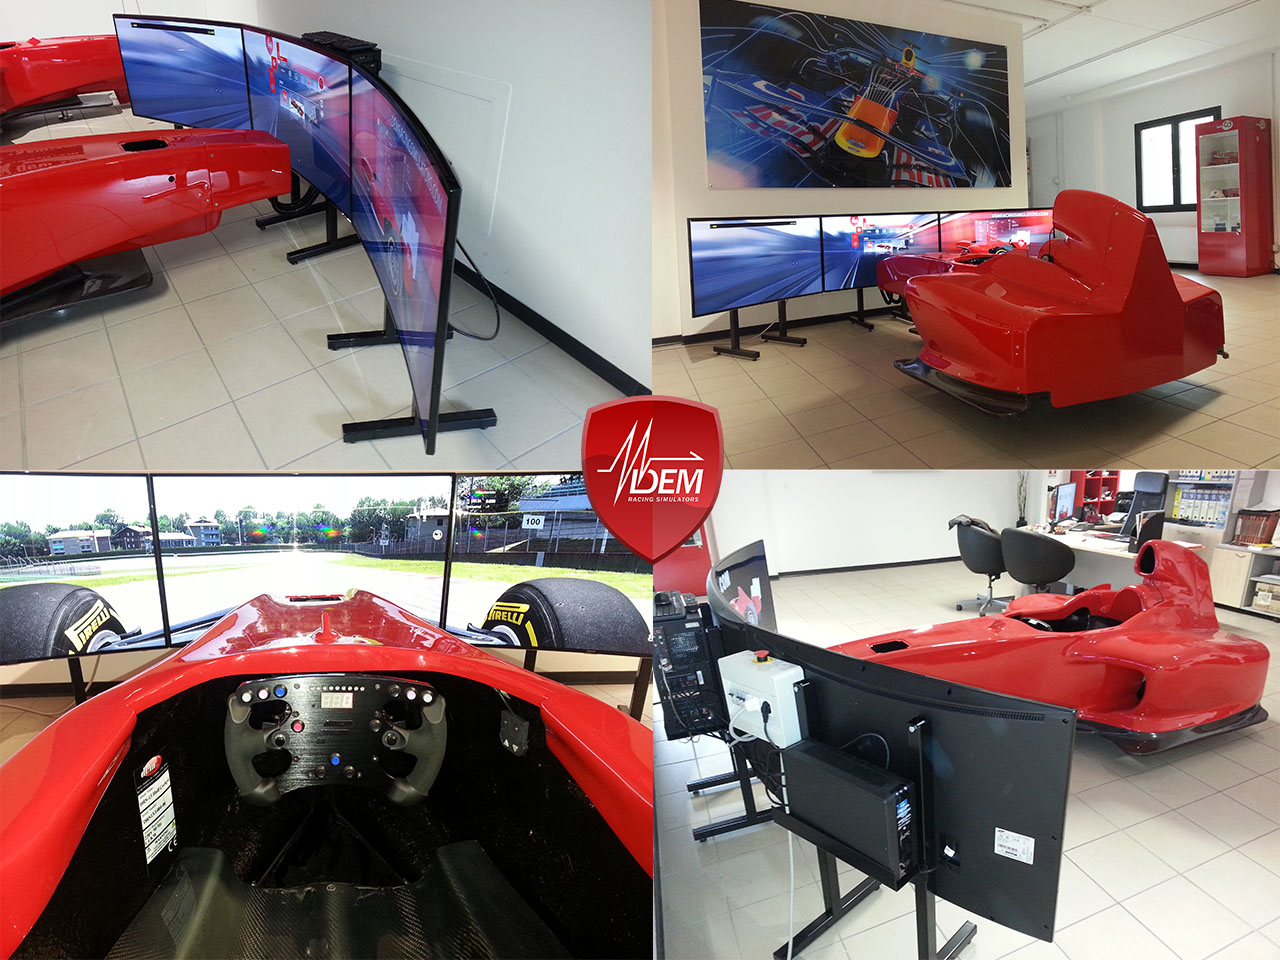 Drs 13 F1 Simulator Now With Curved Screens Dem Racing